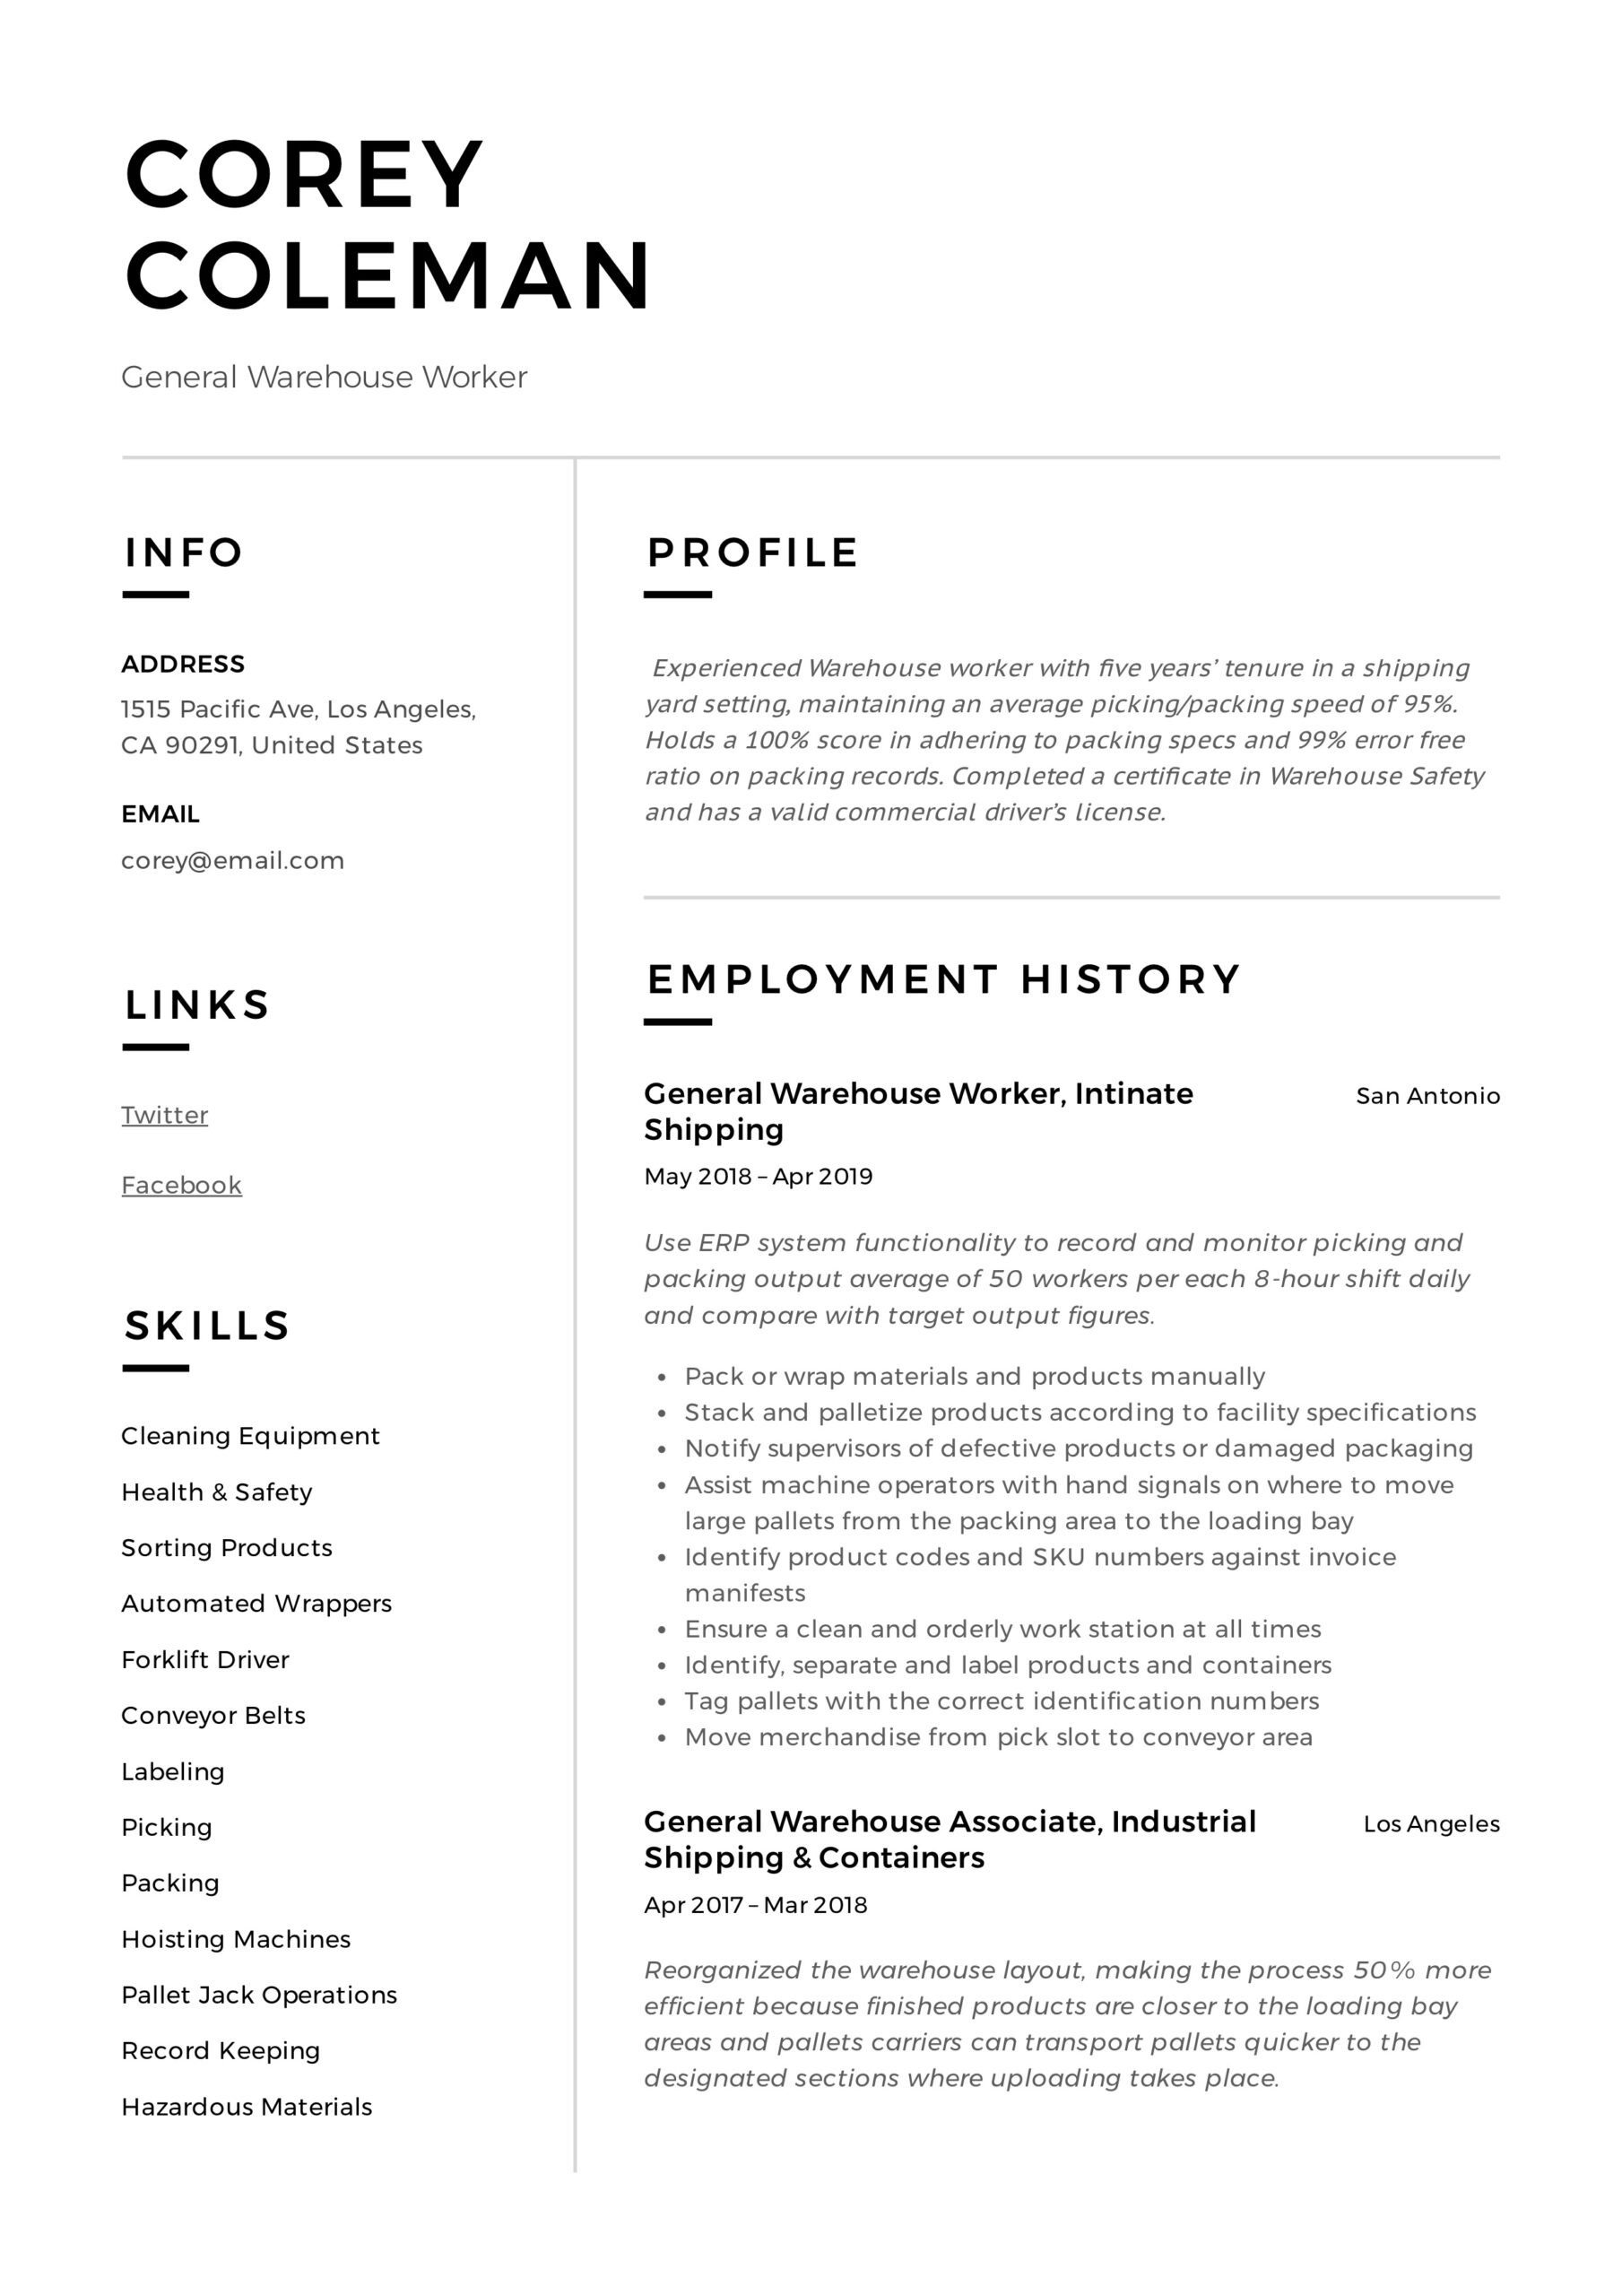 general warehouse worker resume guide templates summary corey remodeling listing Resume Warehouse Resume Summary